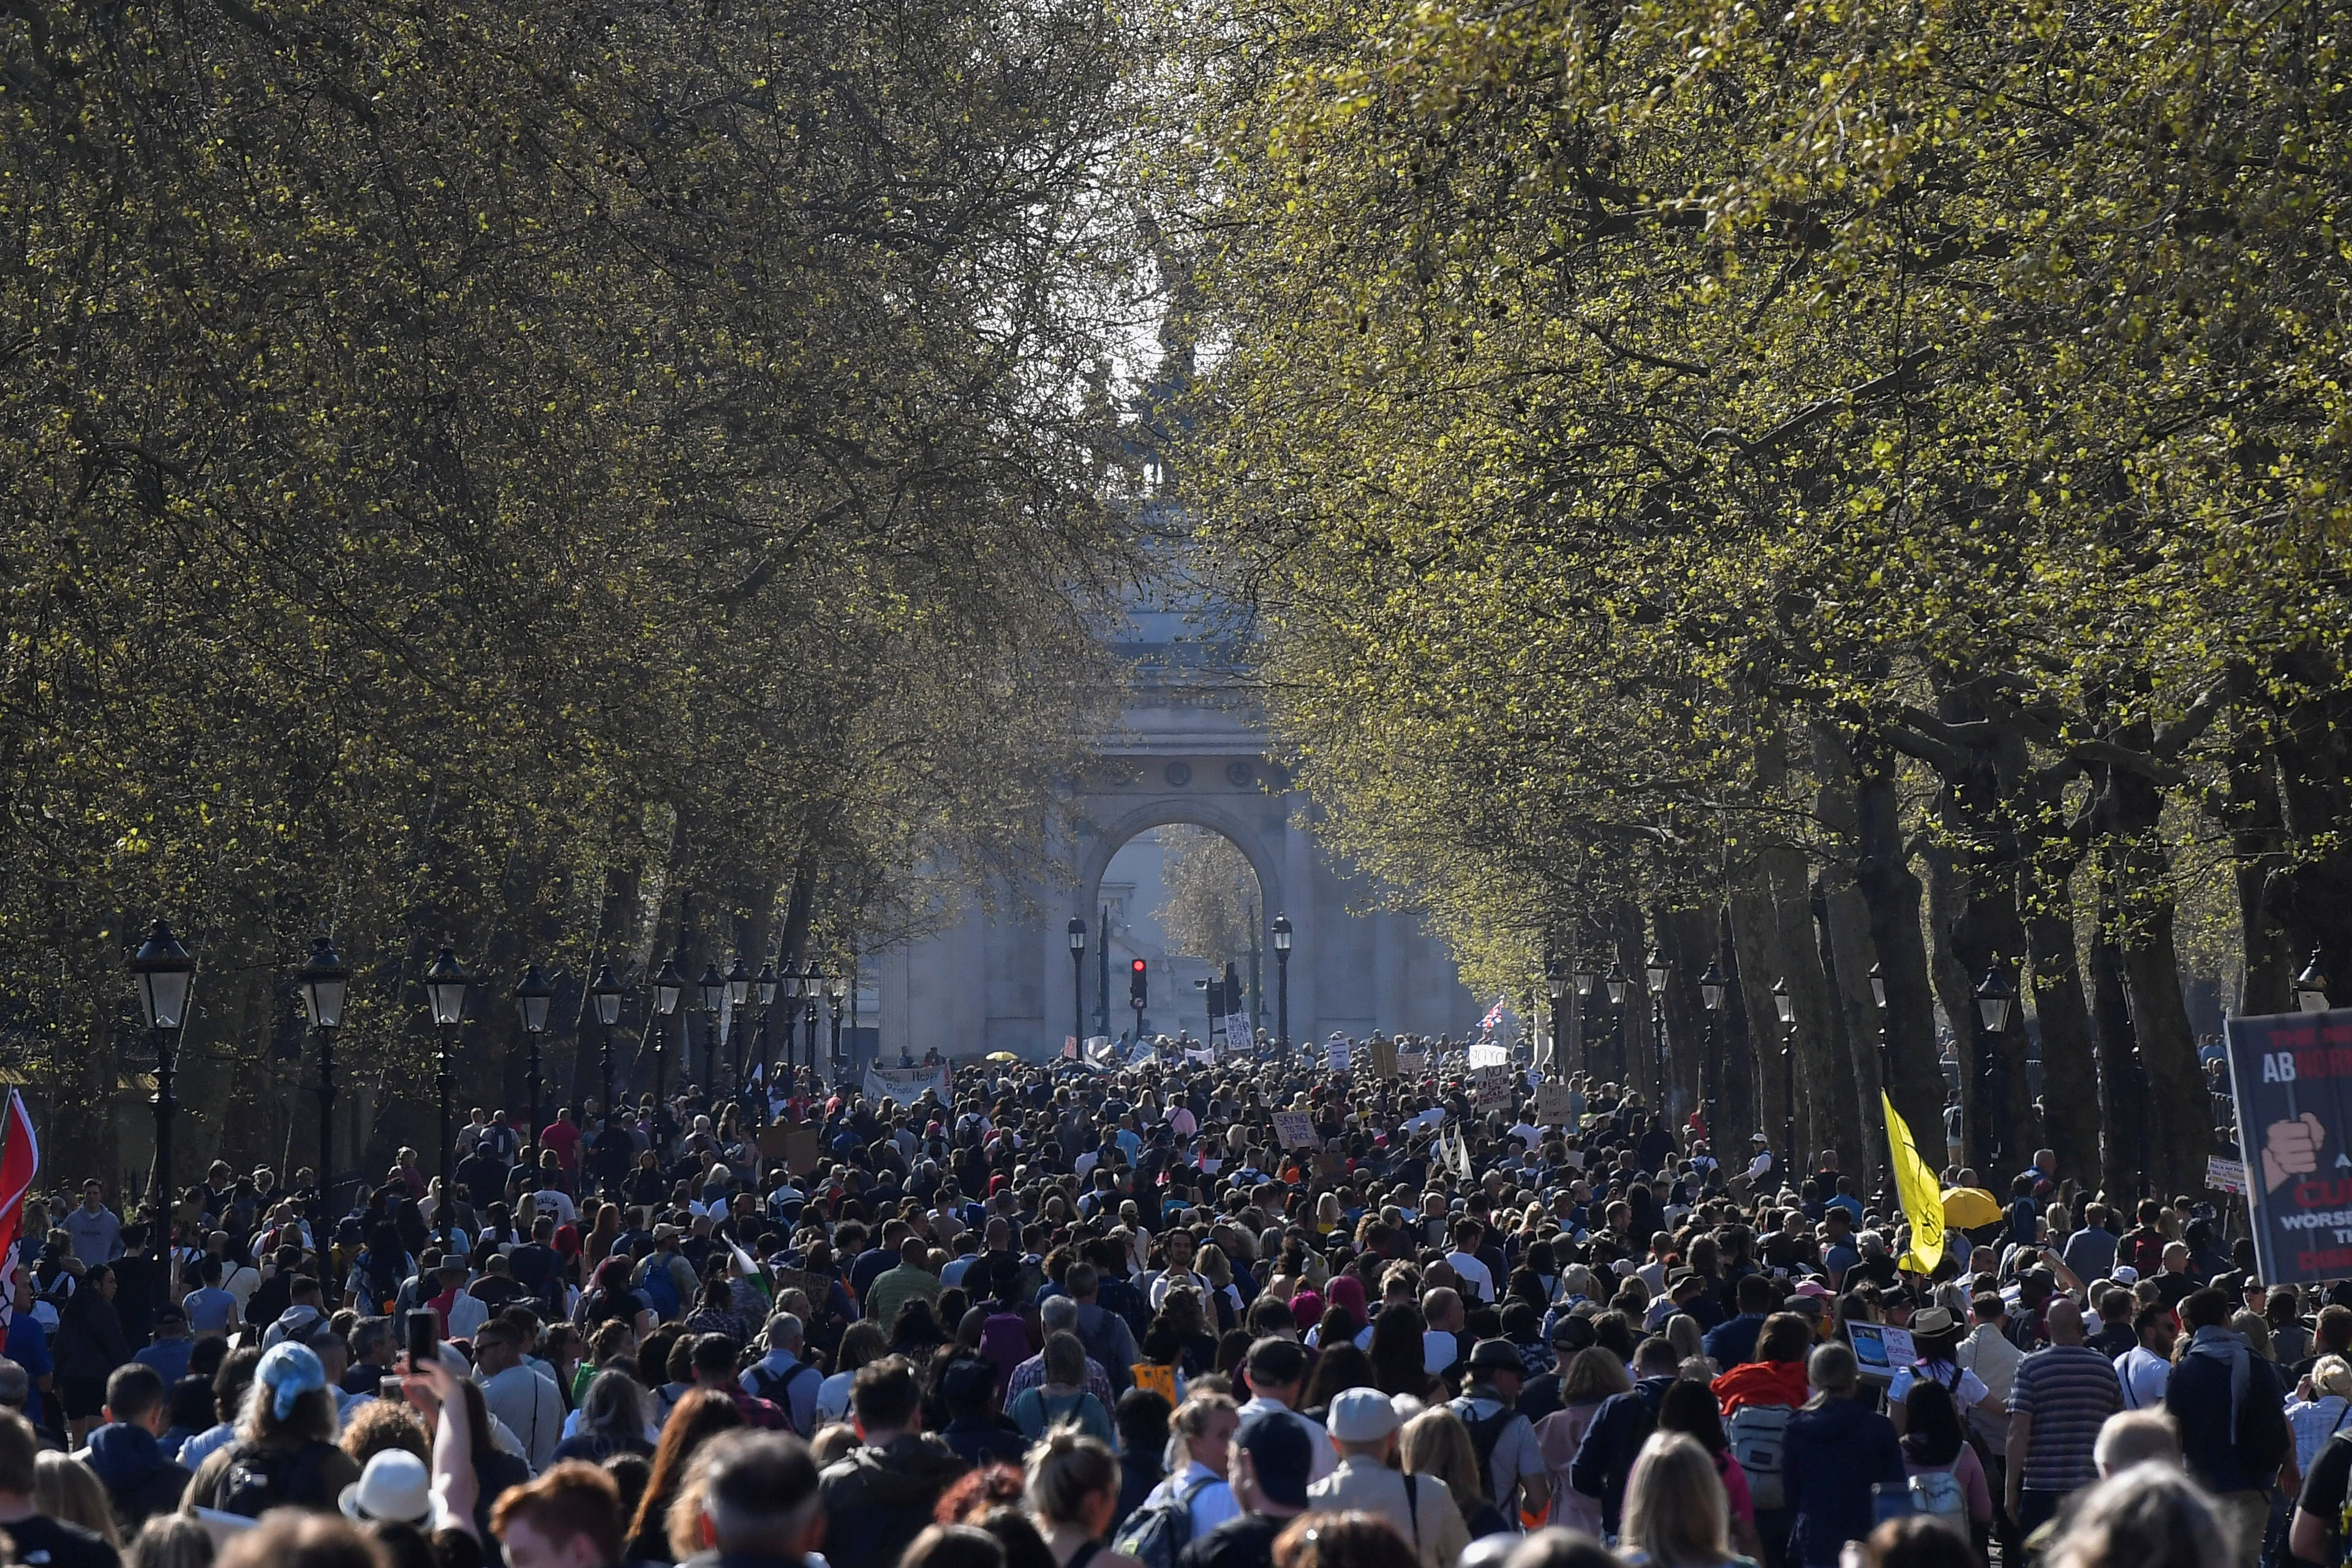 Demonstrators march during an anti-lockdown 'Unite for Freedom' protest, amid the spread of the coronavirus disease (COVID-19), in London, Britain, April 24, 2021. REUTERS/Toby Melville